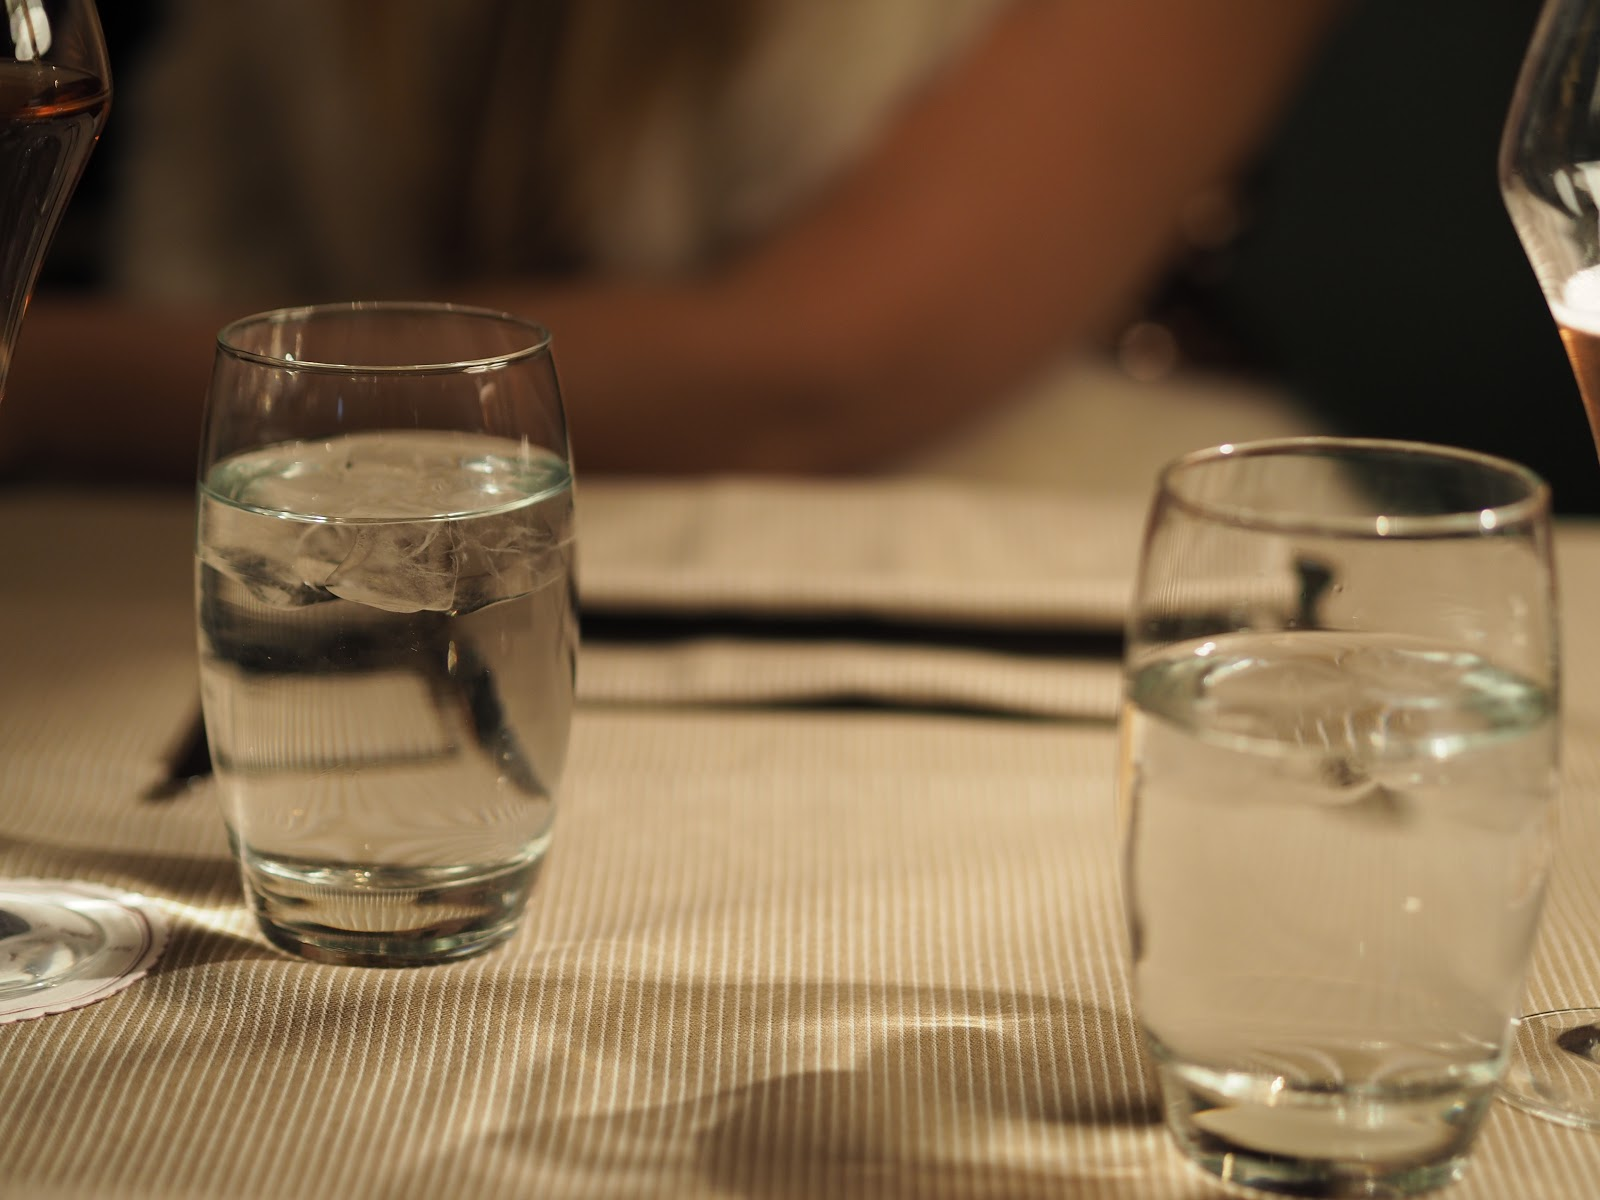 water glasses on striped table cloth